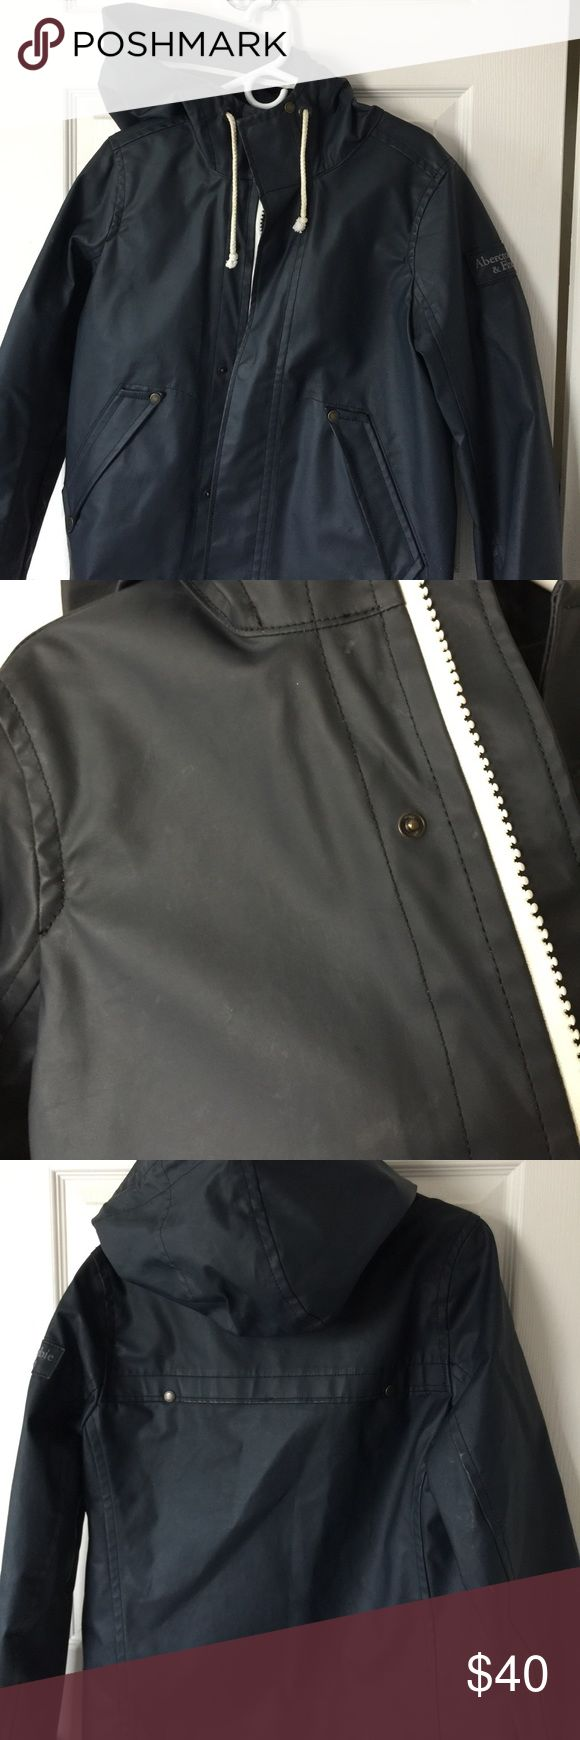 Men's Rain Jacket Abercrombie & Fitch Great rain jacket. Has been outgrown. Worn but still in very good condition. Some discoloration as pictured and staining on the front as pictured. Jacket is navy blue. Kept in a smoke/pet free household. Abercrombie & Fitch Jackets & Coats Raincoats